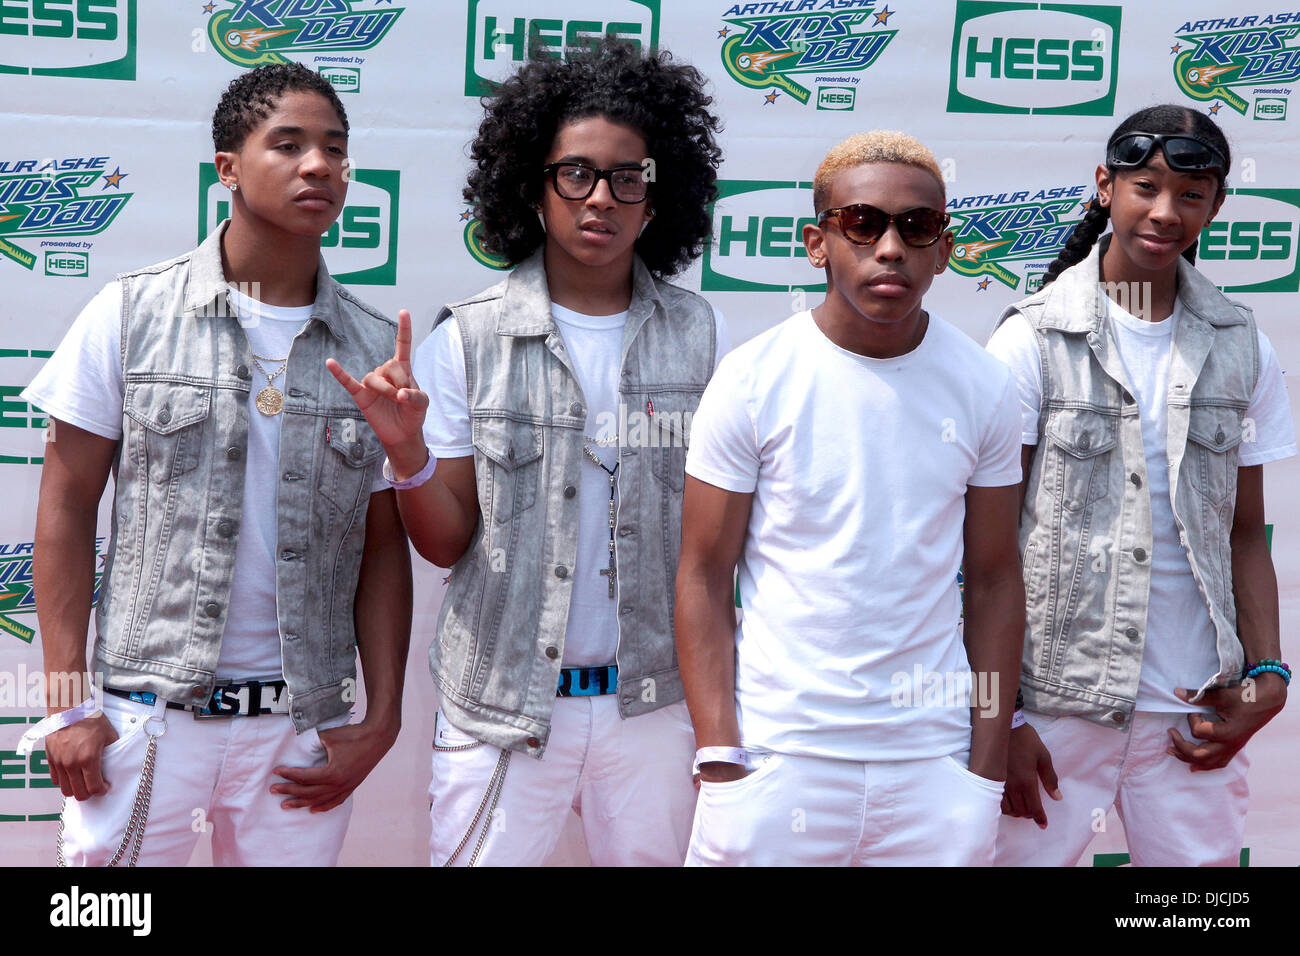 Prodigy Princeton Ray Ray Roc Stock Photos Prodigy Princeton Ray